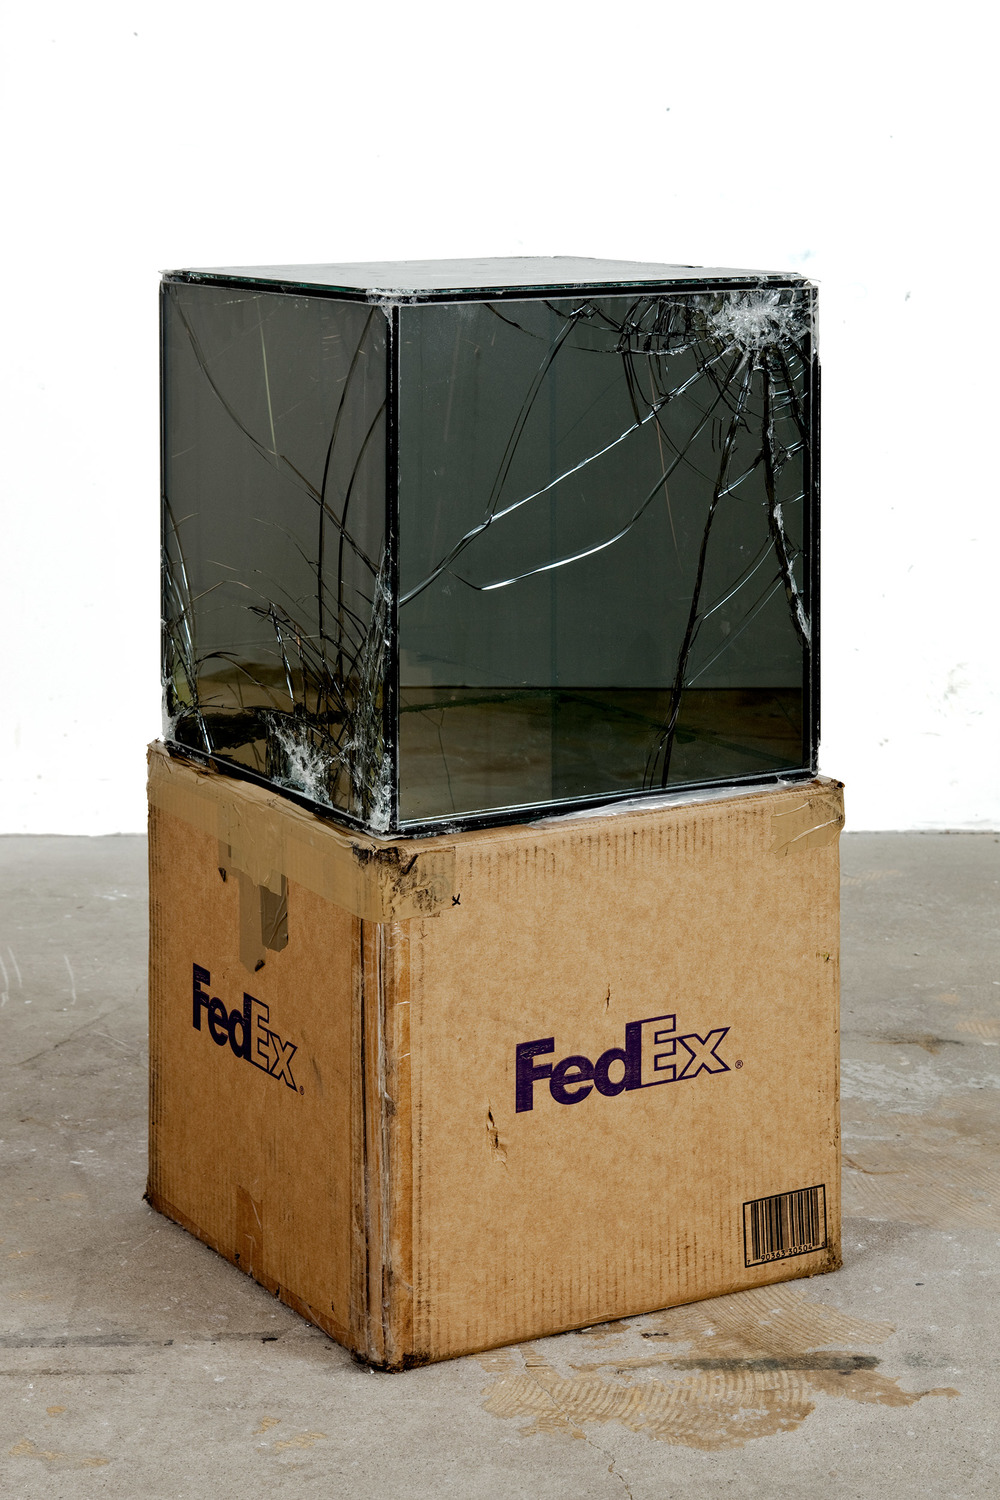 FedEx Kraft Box 2005 FEDEX 330504 10/05 SSCC, Priority Overnight, Los Angeles–Miami trk#865344981314, October 29–30, 2008, Priority Overnight, Miami–Los Angeles trk#861049125089, November 17–18, 2008, Priority Overnight, Los Angeles-Miami Beach trk#860147611241, December 01–02, 2008, Priority Overnight, Miami–Los Angeles trk#867525901310, December 08–09, 2008, Priority Overnight, Los Angeles–Ann Arbor trk#867525901228, March 09–10, 2009, Standard Overnight, Ann Arbor–Los Angeles trk#868274625705, July 09–10, 2009, Standard Overnight, Los Angeles–San Francisco trk#870069766460, August 27–28, 2009, Standard Overnight, San Francisco–Los Angeles trk#870342520112, November 12–13, 2009    2008–   Laminated Mirropane, FedEx shipping box, accrued FedEx shipping and tracking labels, silicone, metal, tape  16 x 16 x 16 inches   FedEx Glass Works, 2007–